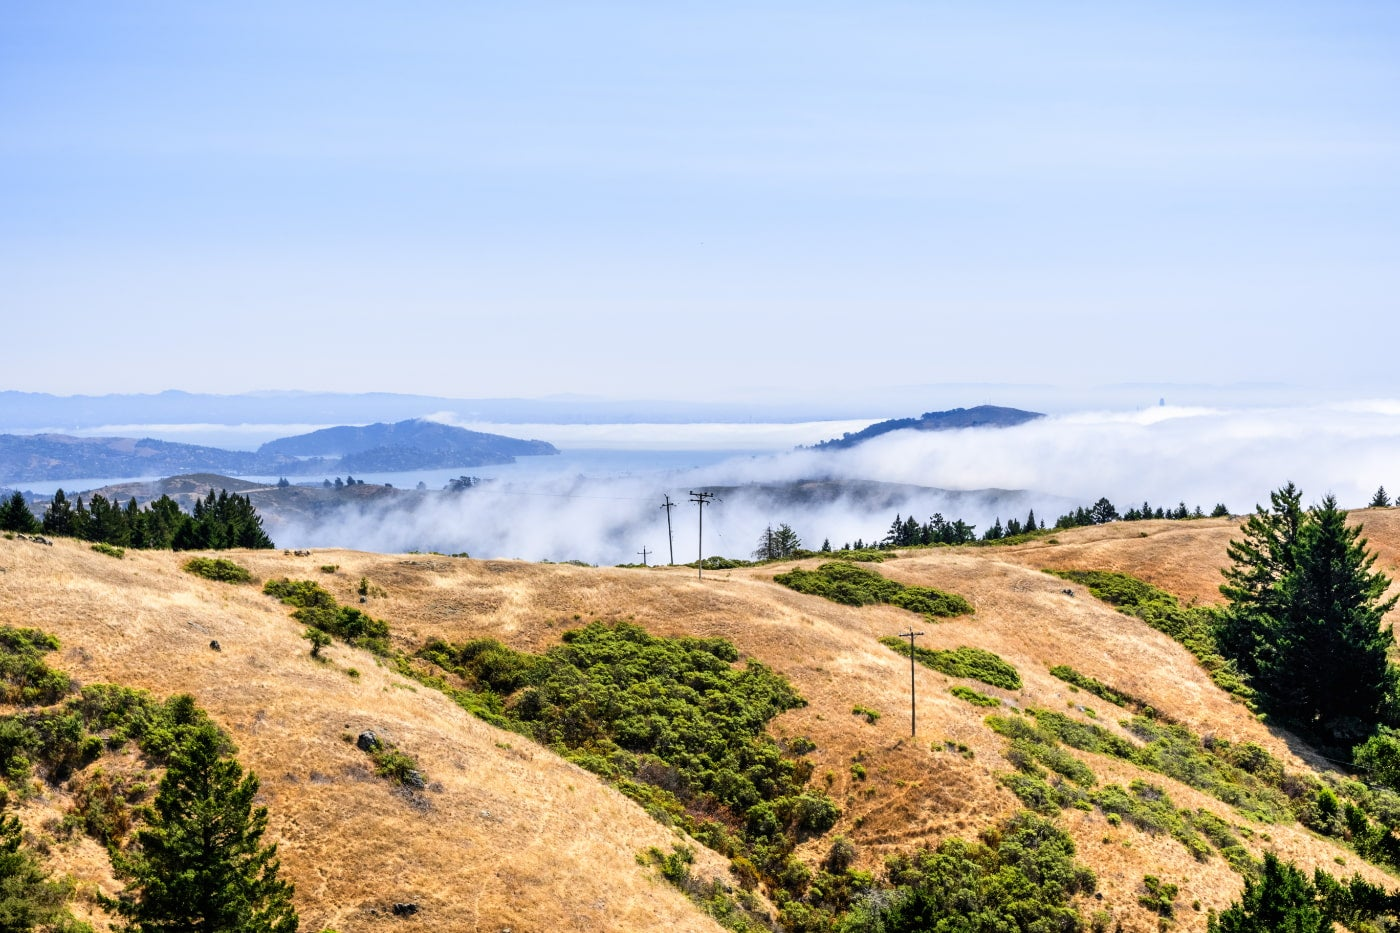 dry grassy hill in foreground with fog visible in background as it rolls over san francisco bay hills